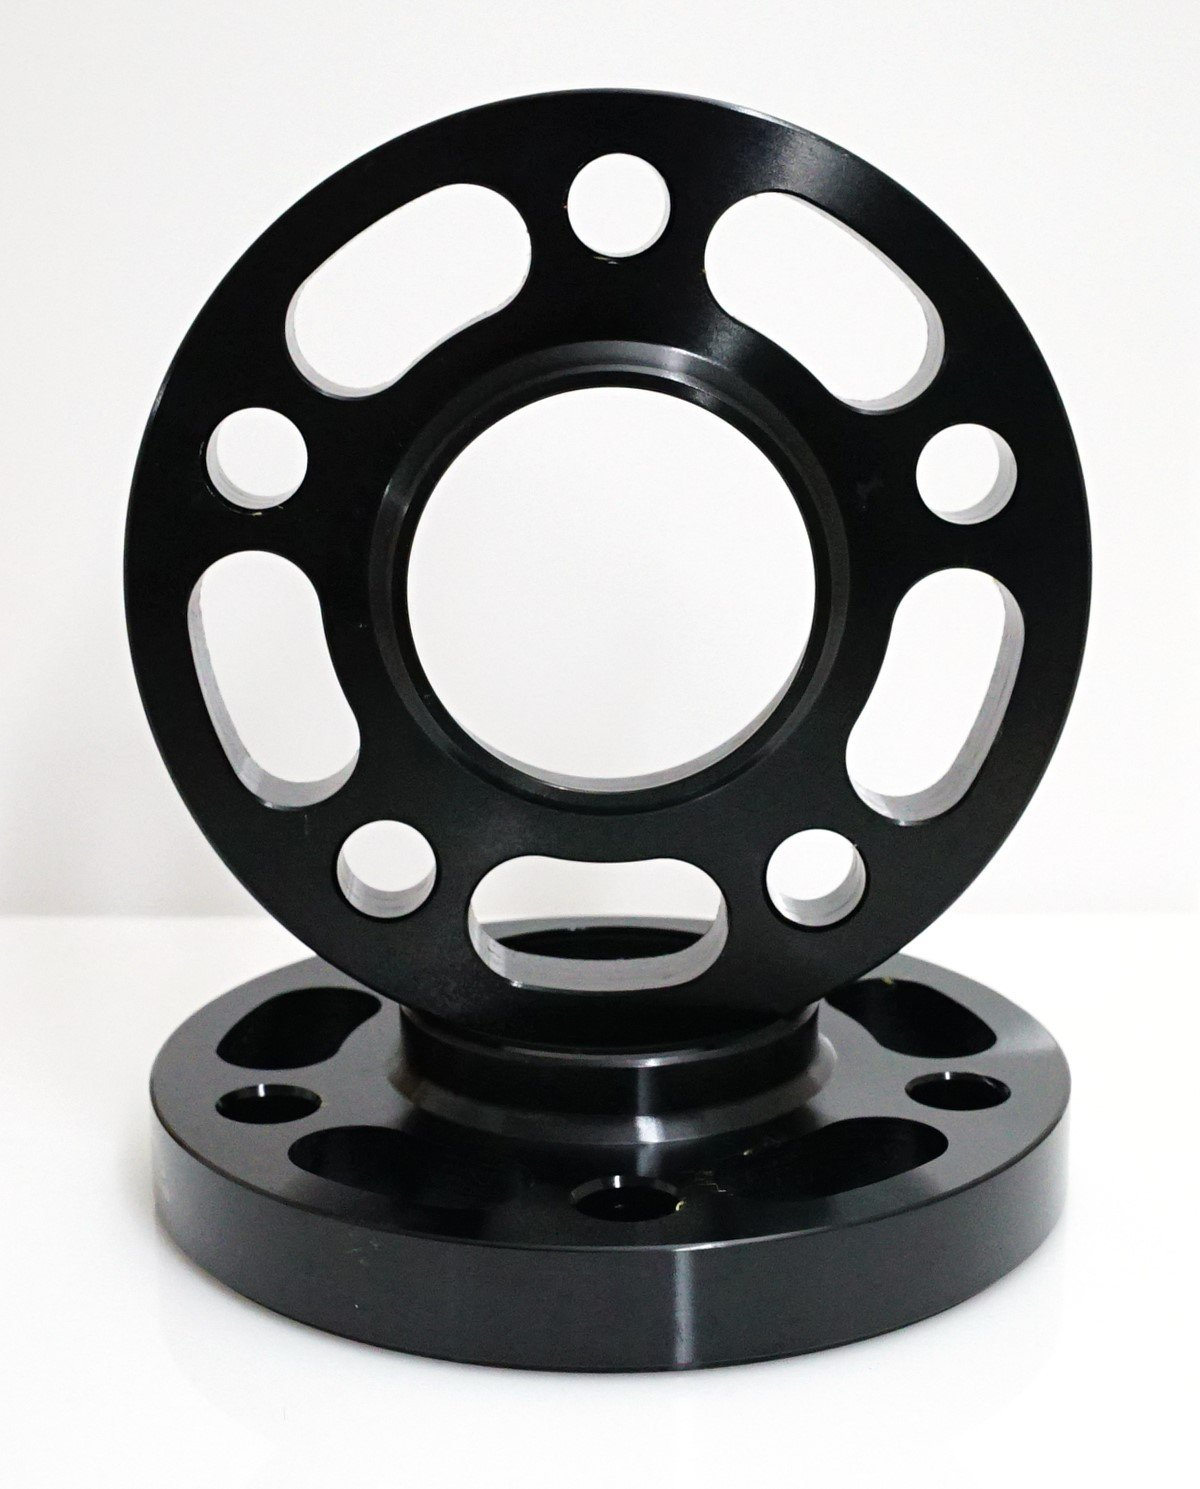 5x112mm Hub Bore 66.56mm Renn Motorsport Renn/_20MM/_SpacerB 2 PCS 20mm Black Wheel Spacers with 10 pcs extended Ball Seat Bolts For Audi and Mercedes Bolt Pattern